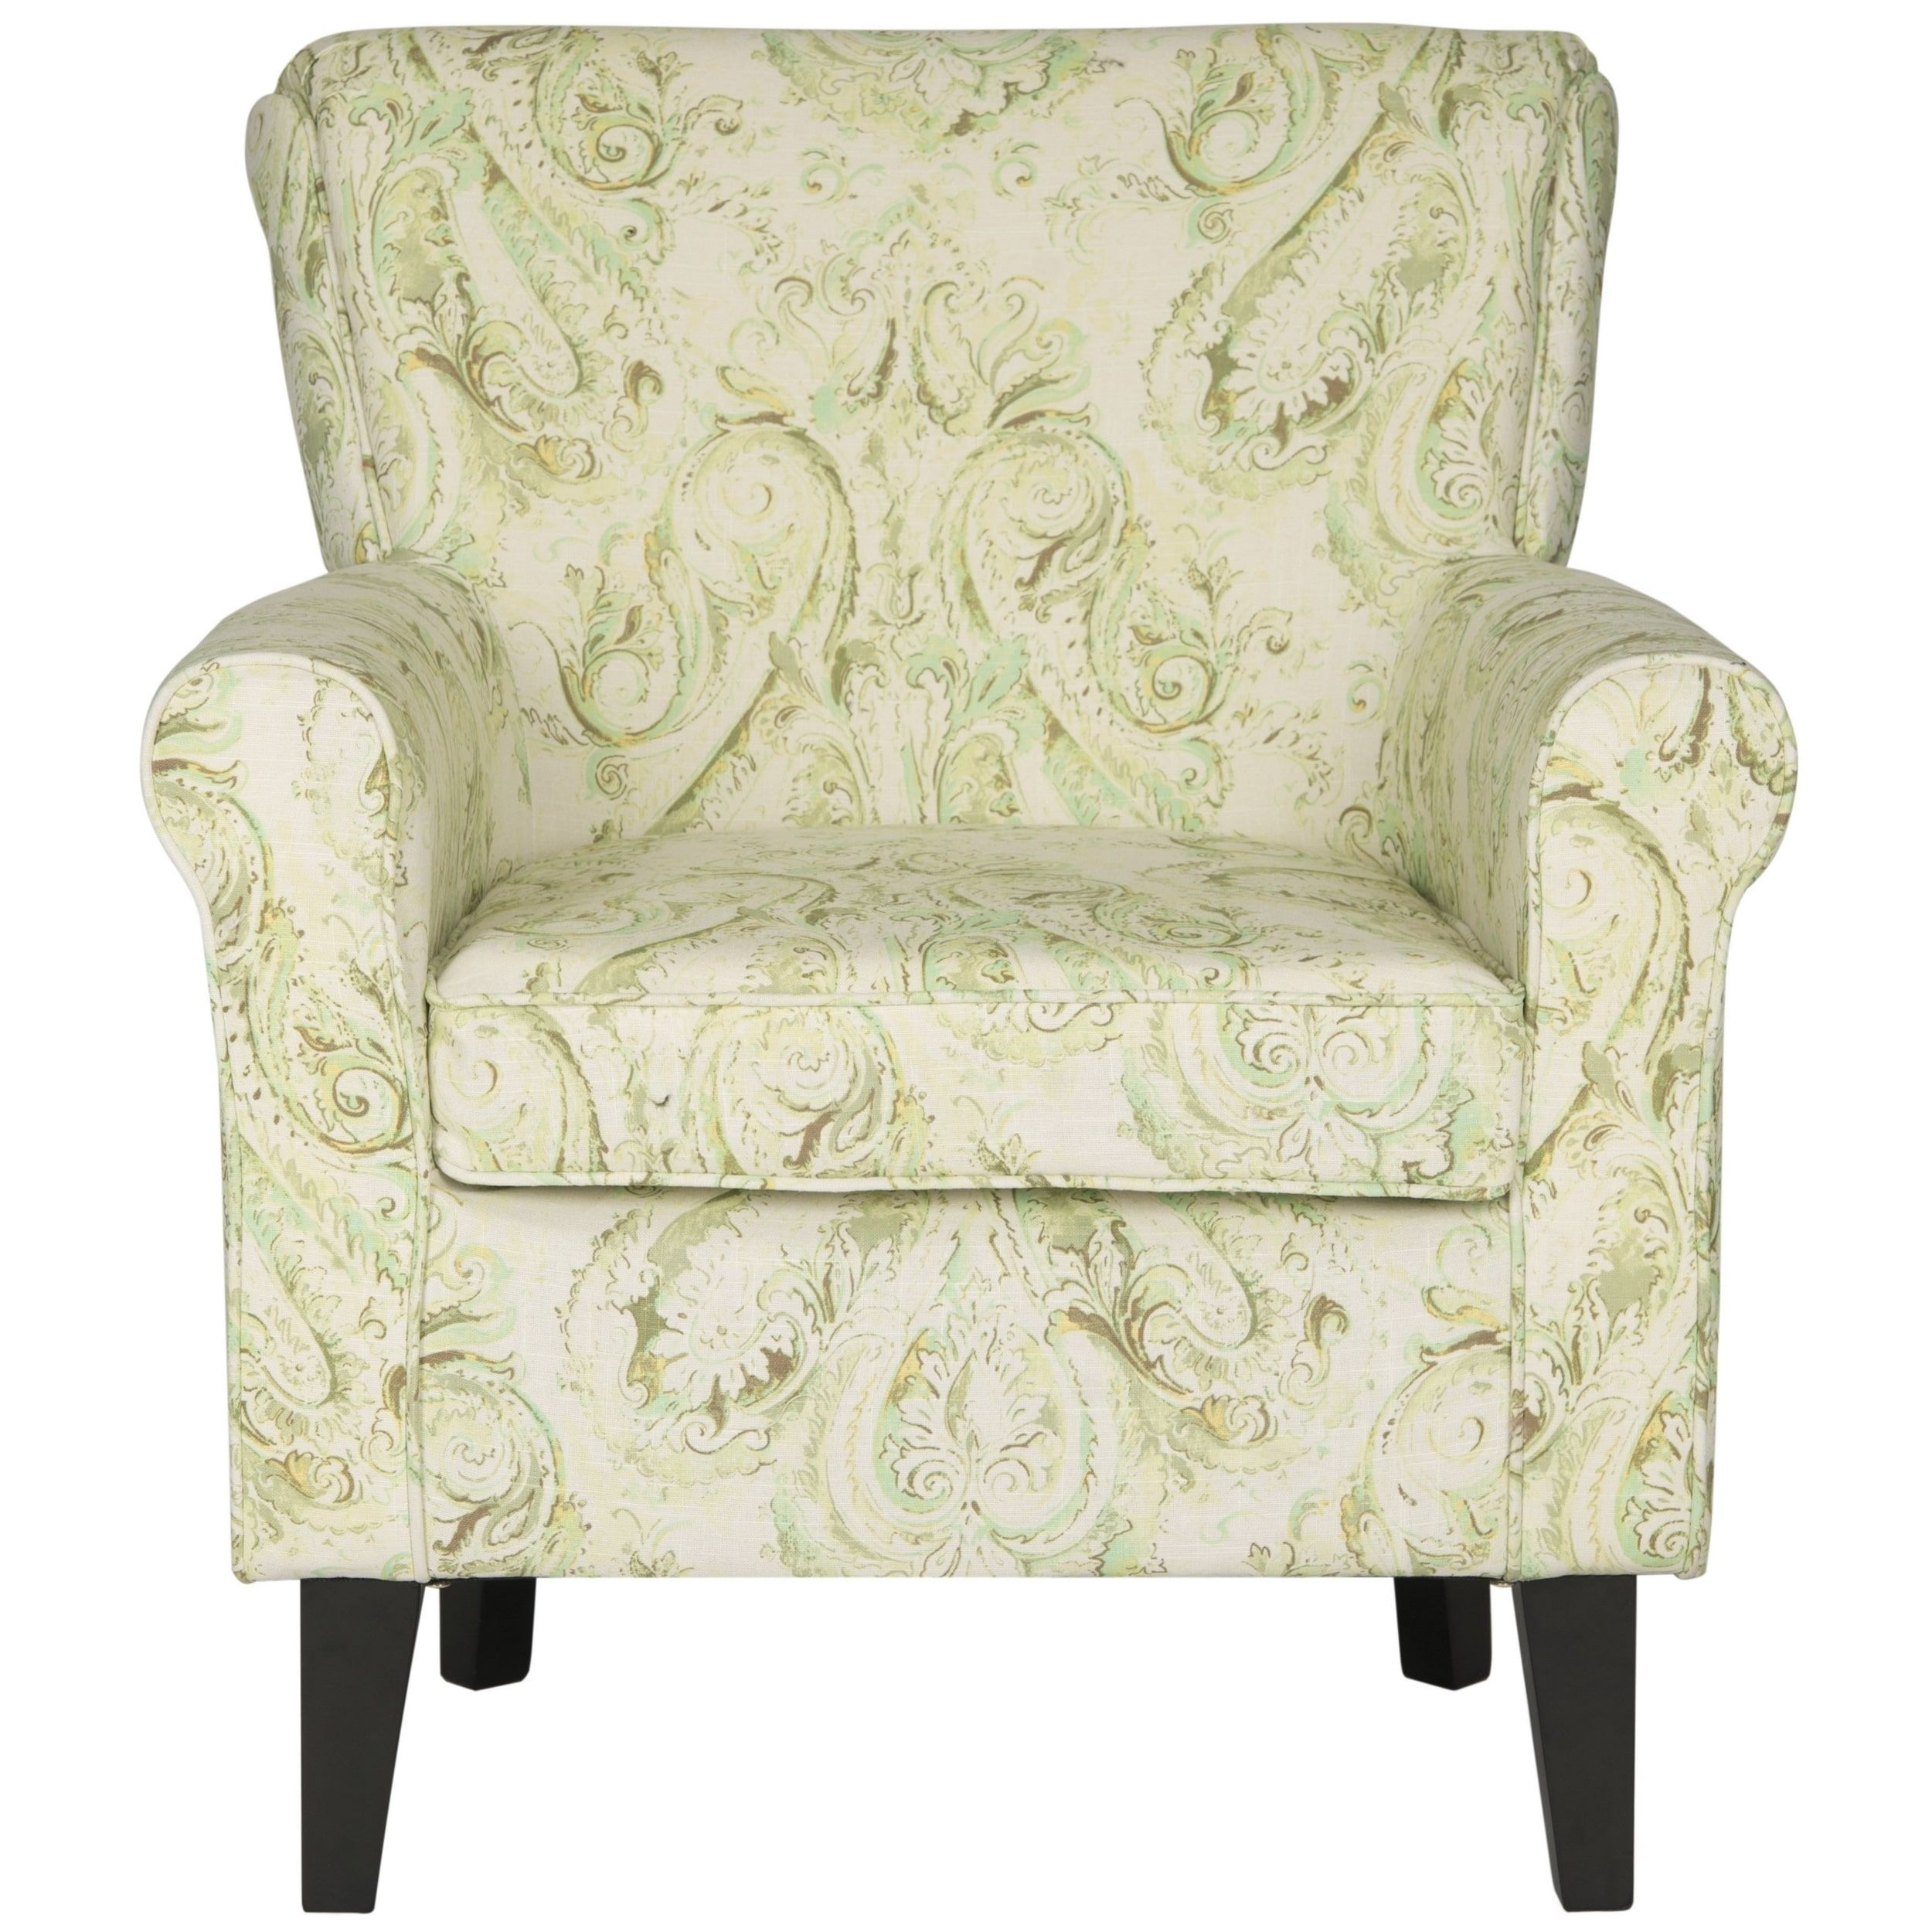 Safavieh Hazina Green Printed Paisley Rolled Back Club Chair by